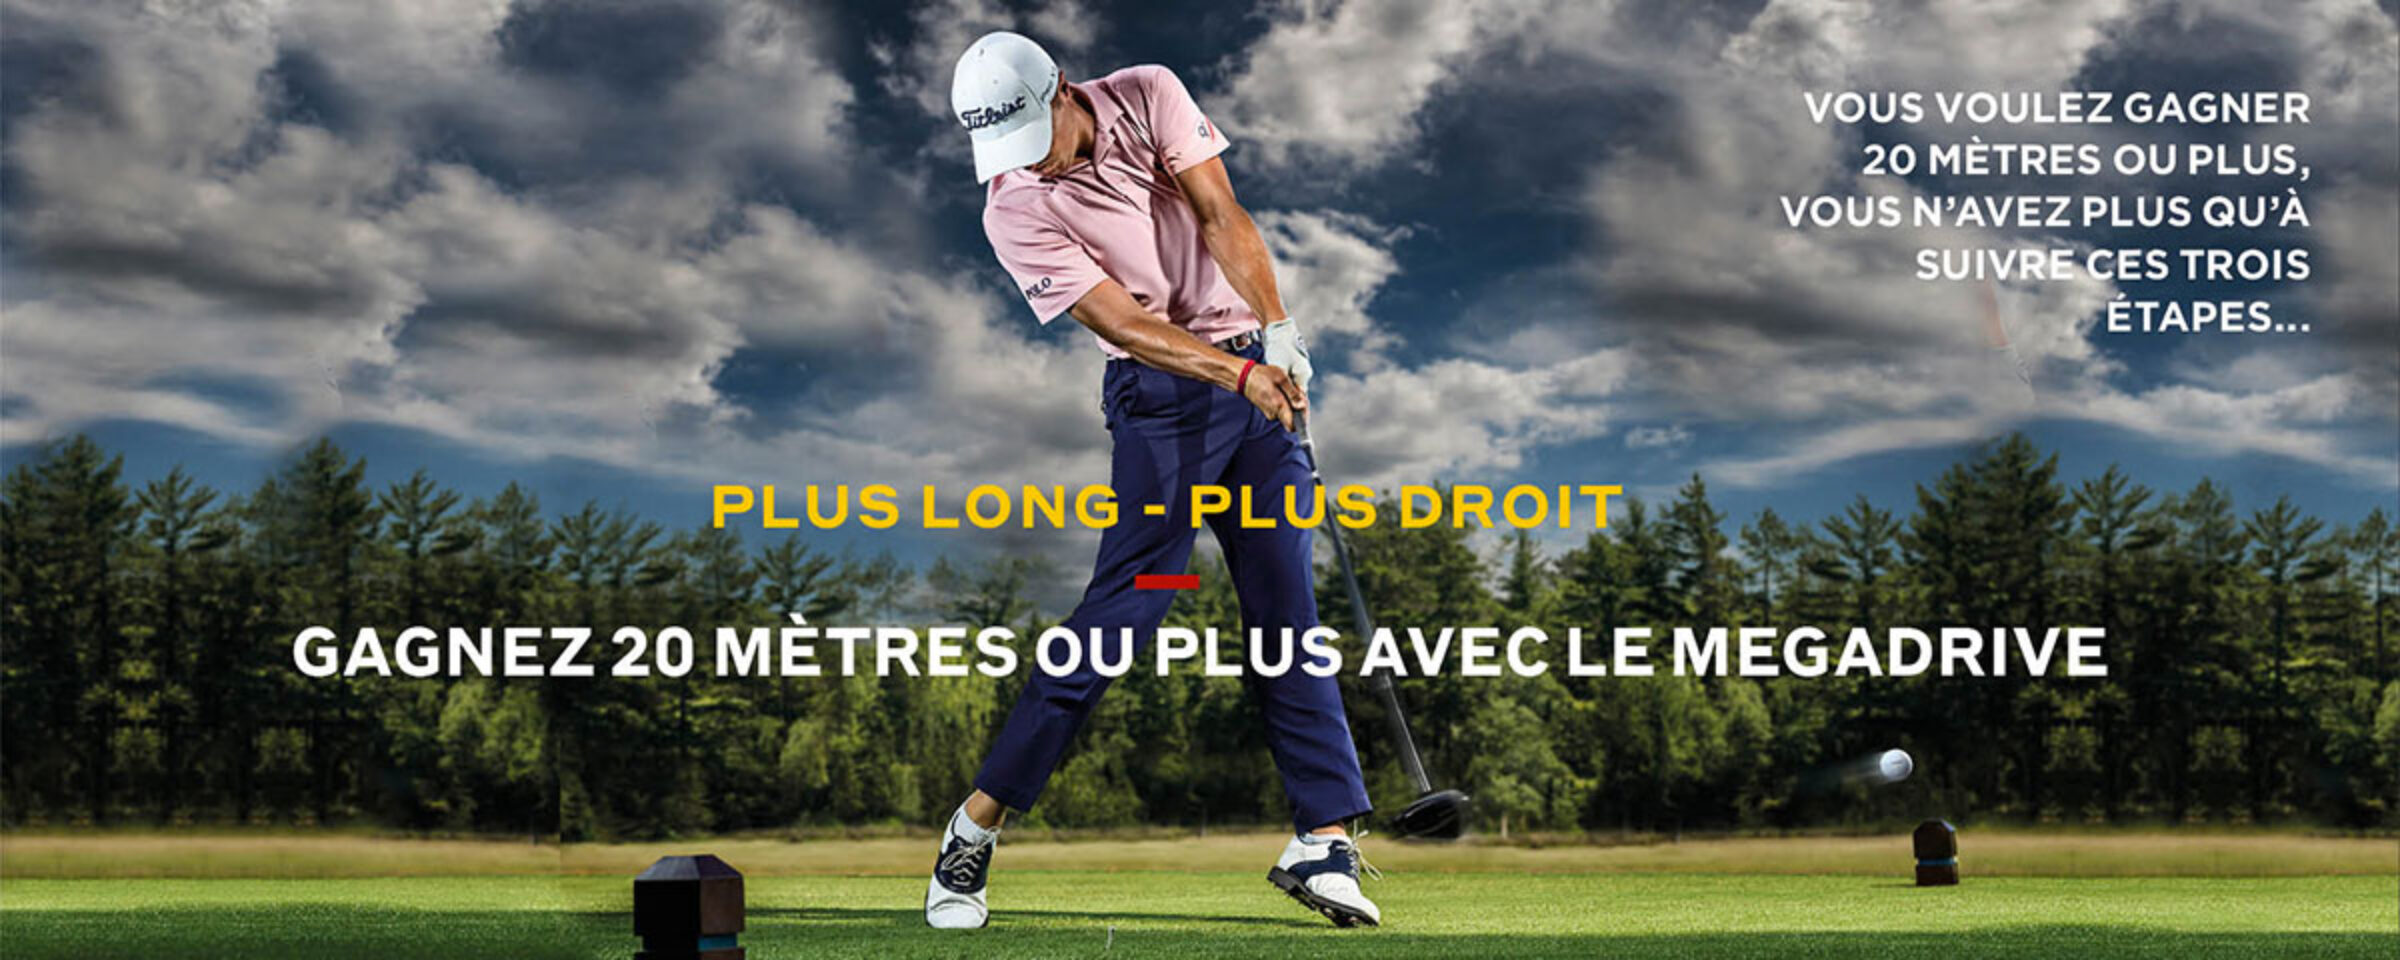 Plus long – plus droit